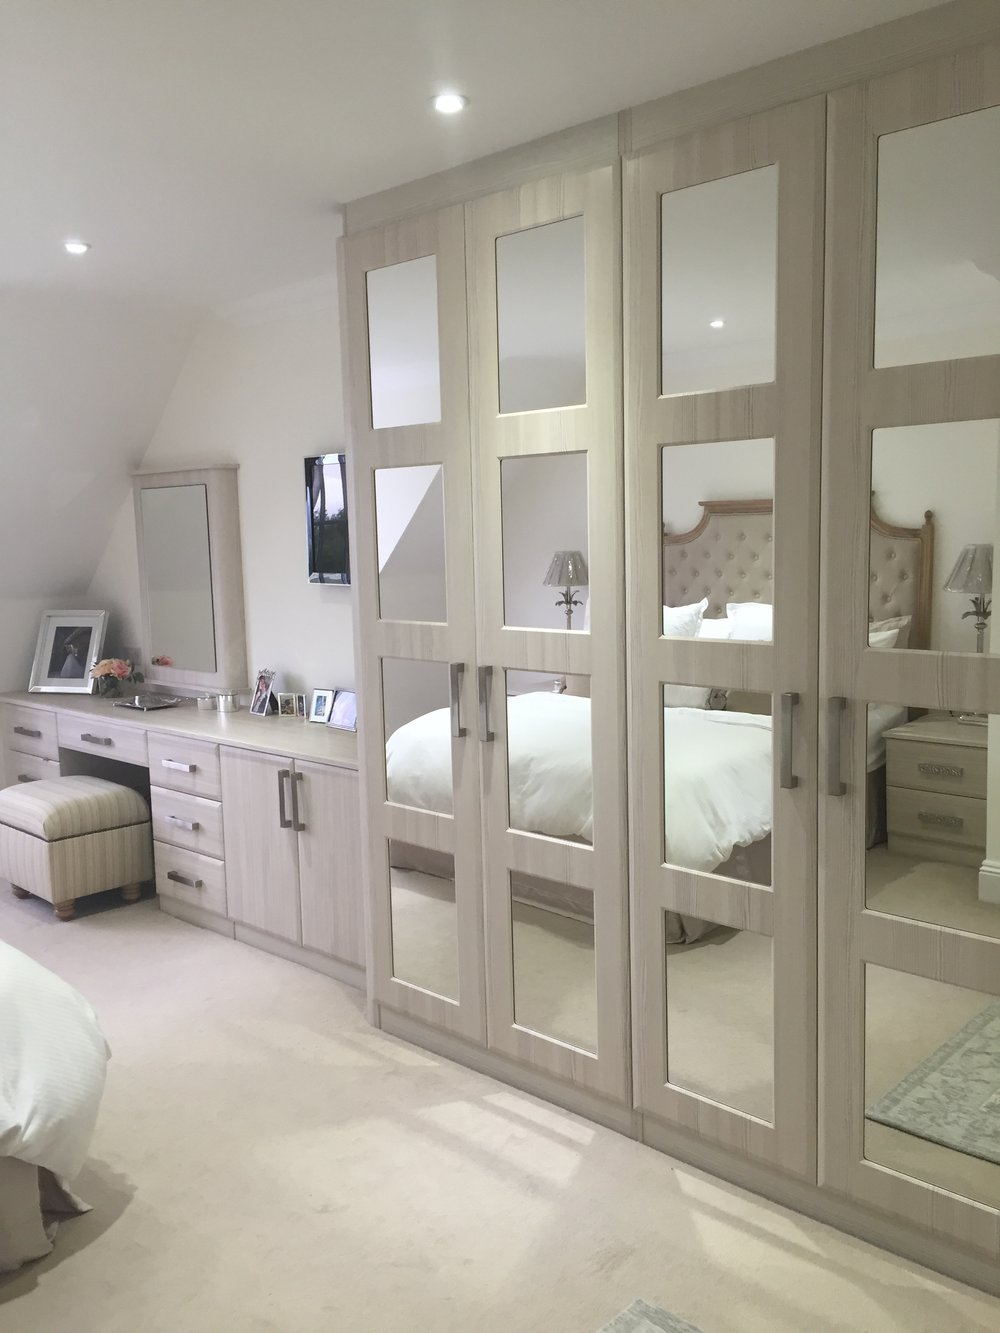 Titchfield - this lovely client wanted a shabby chic style room that was restful and calm, but also had loads of storage for her and her husband. This 'White Avola' colour fitted the bill beautifully and the mirrors brighten and reflect.